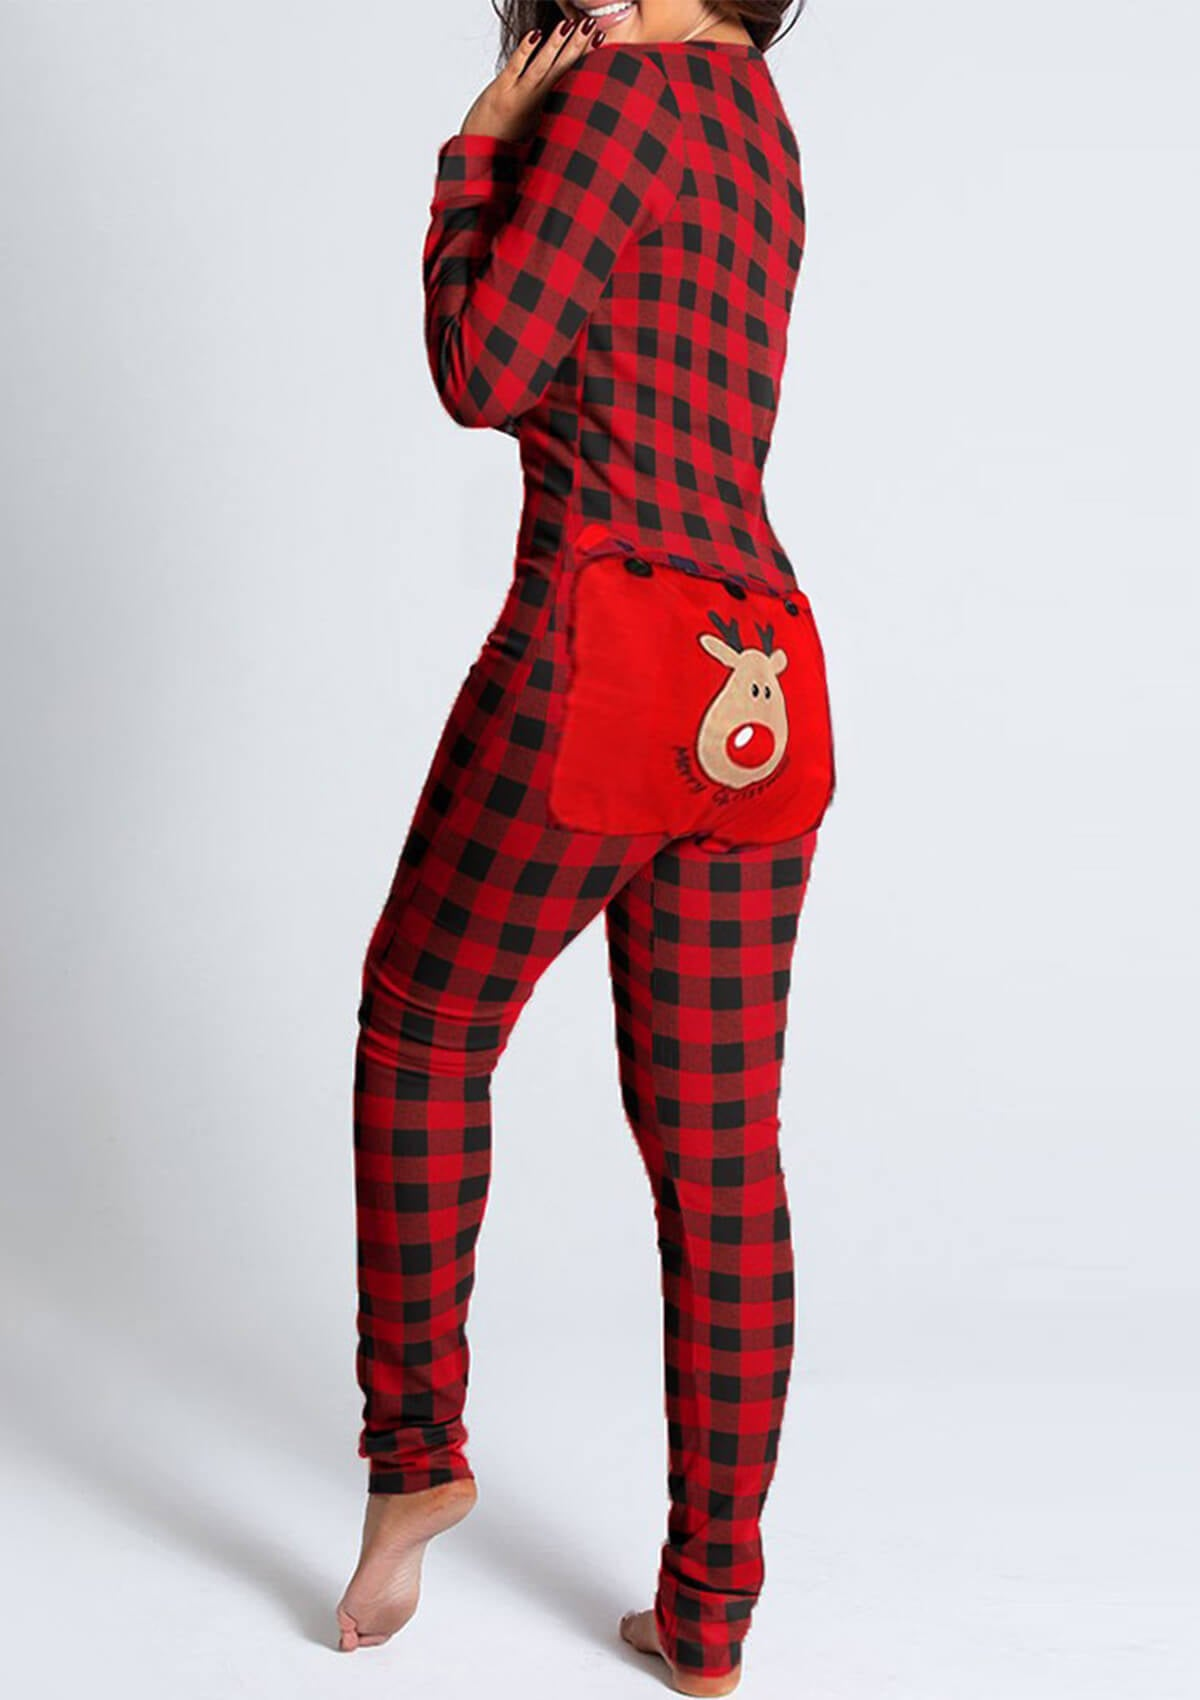 Functional Buttoned Flap Adults Pajamas